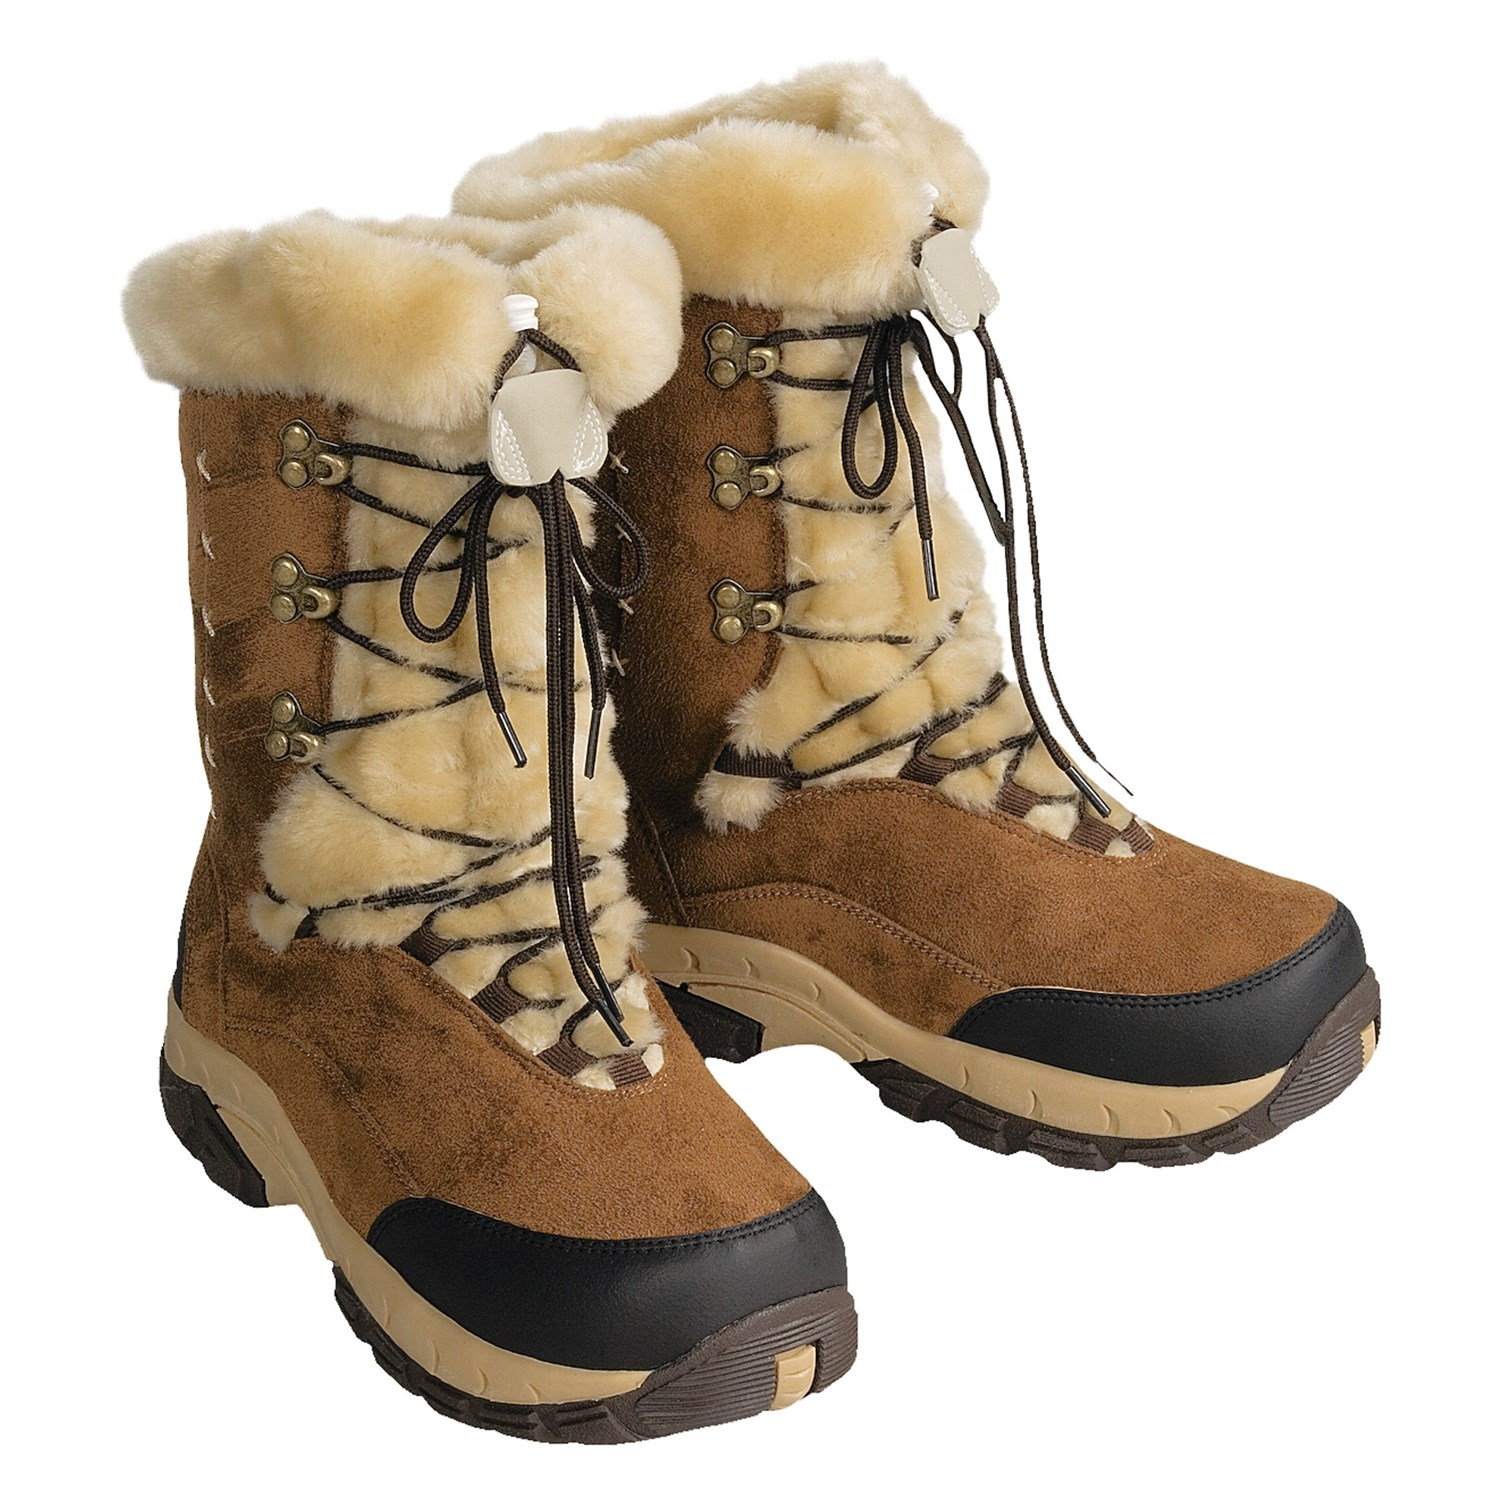 Cheap Snow Boots For Men hNFoUSP8